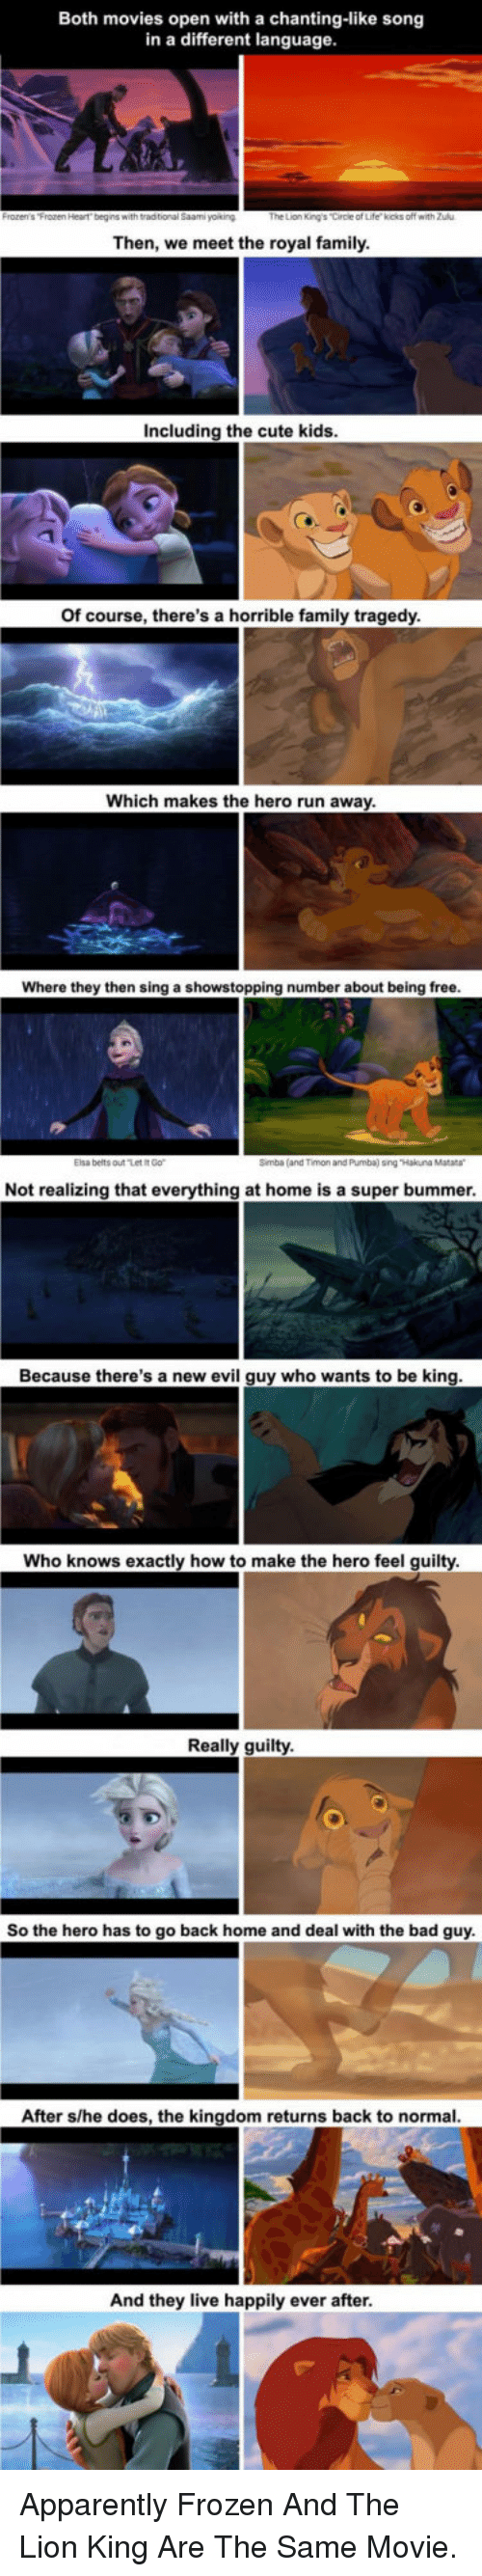 bummer: Both movies open with a chanting-like song  in a different language  Then, we meet the royal family  Including the cute kids  Of course, there's a horrible family tragedy  Which makes the hero run away  Where they then sing a showstopping number about being free  Elsa belts outt  Simba (and Timon and Pumba) sing Hakuna Matara  Not realizing that everything at home is a super bummer  Because there's a new evil guy who wants to be king  Who knows exactly how to make the hero feel guilty  Really guilty  So the hero has to go back home and deal with the bad guy  After s/he does, the kingdom returns back to normal  And they live happily ever after <p>Apparently Frozen And The Lion King Are The Same Movie.</p>